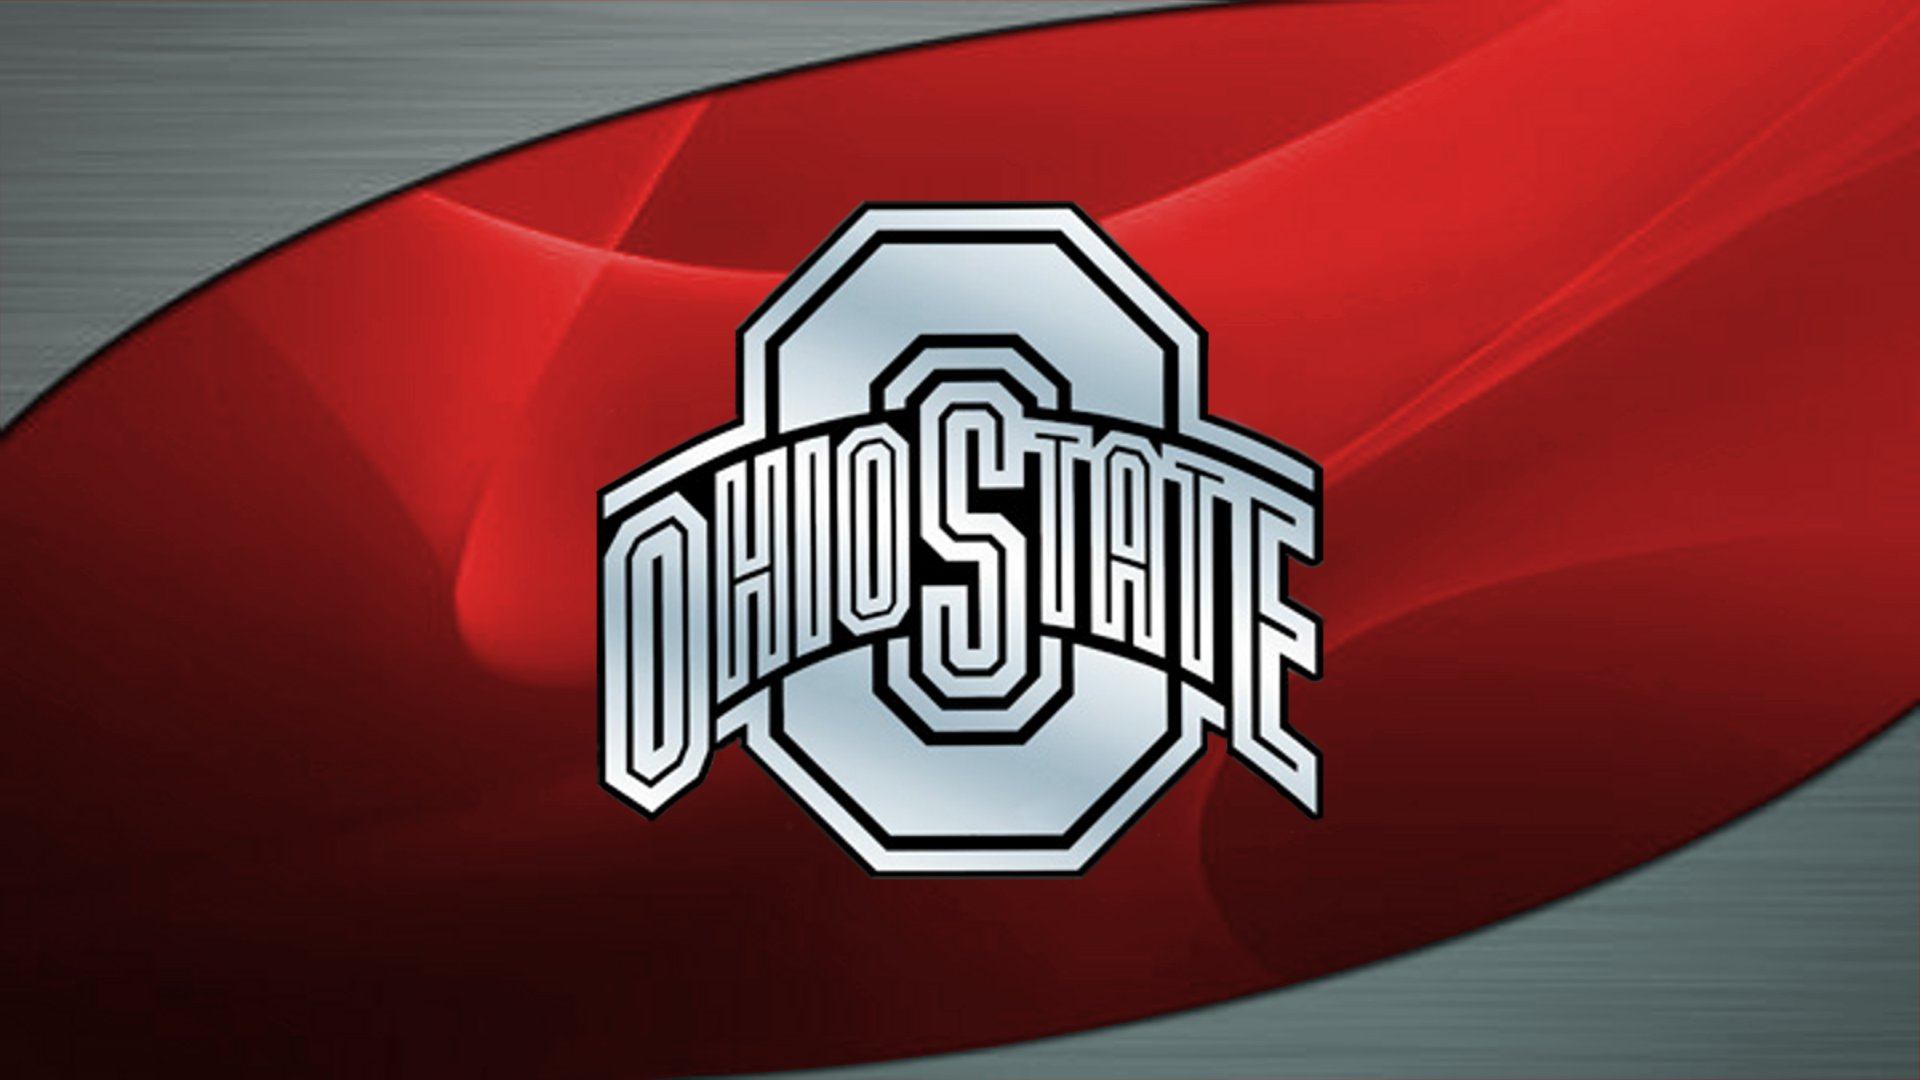 OSU Wallpaper 45   Ohio State Football Wallpaper 29249112 1920x1080